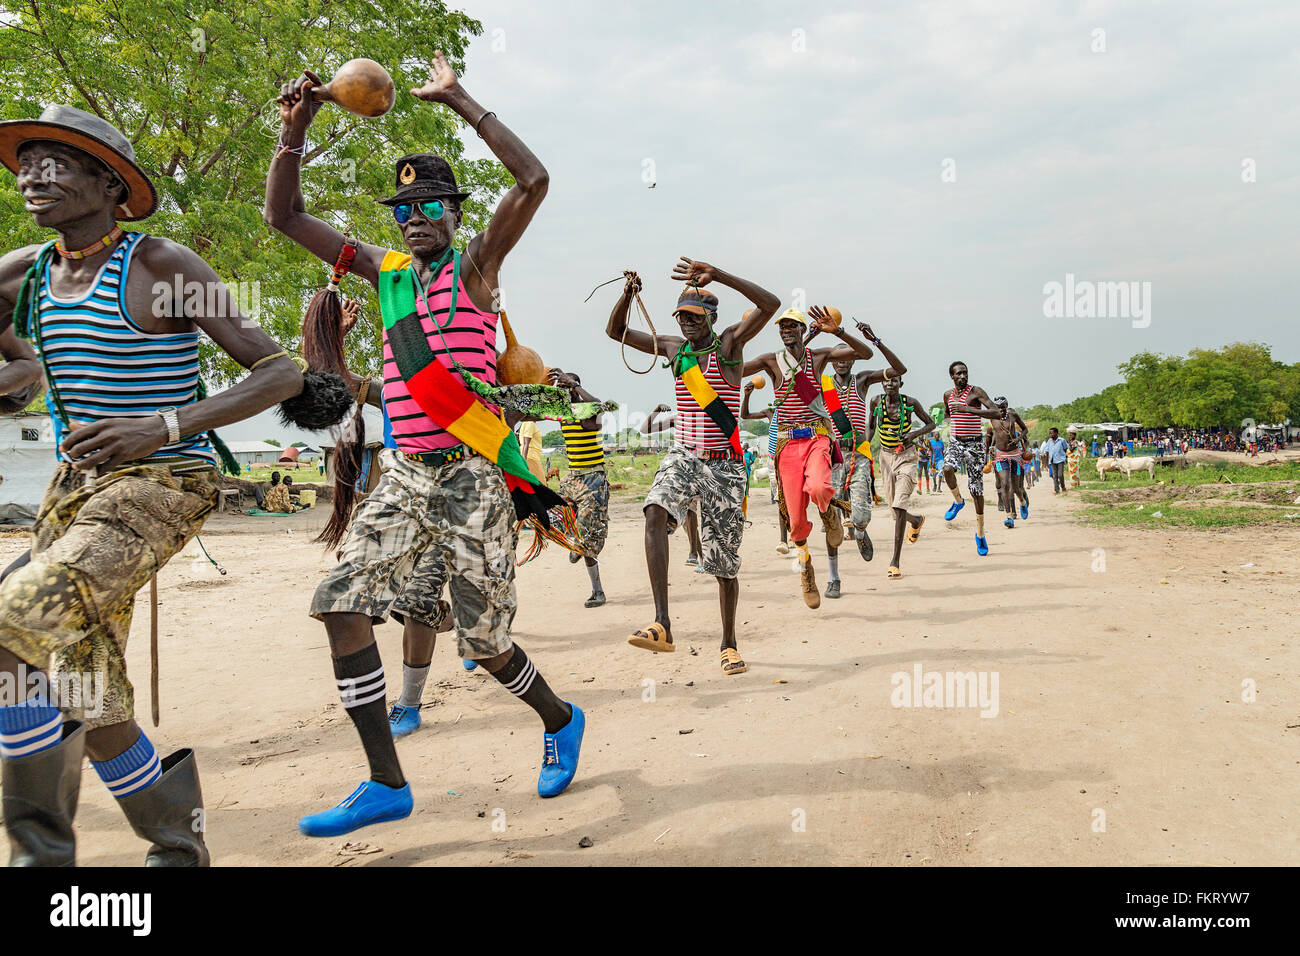 Murle men having a party in Pibor, South Sudan. - Stock Image